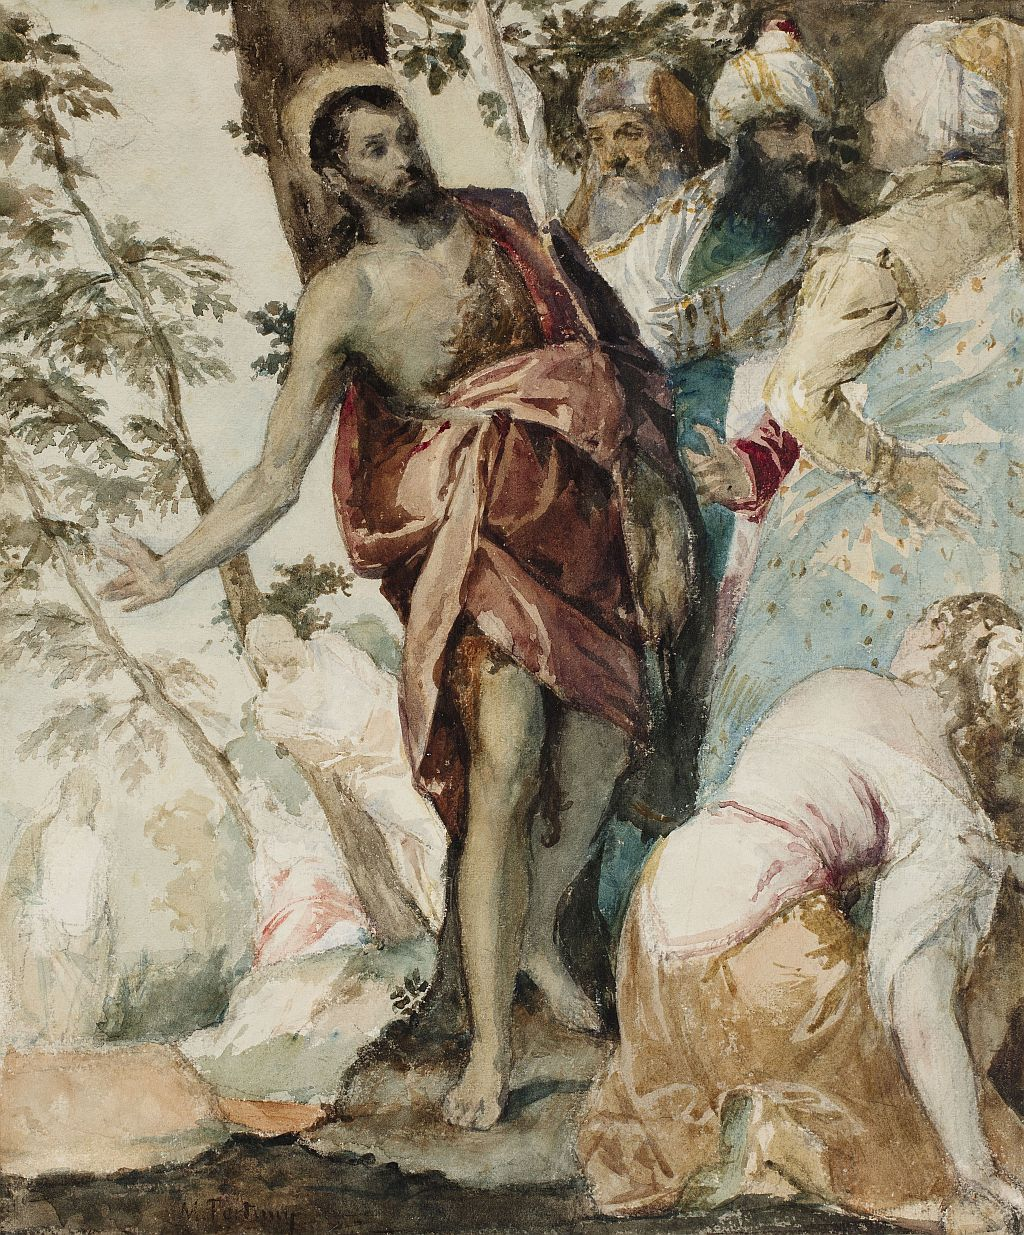 Saint John the Baptist preaching, following Veronese, Marià Fortuny